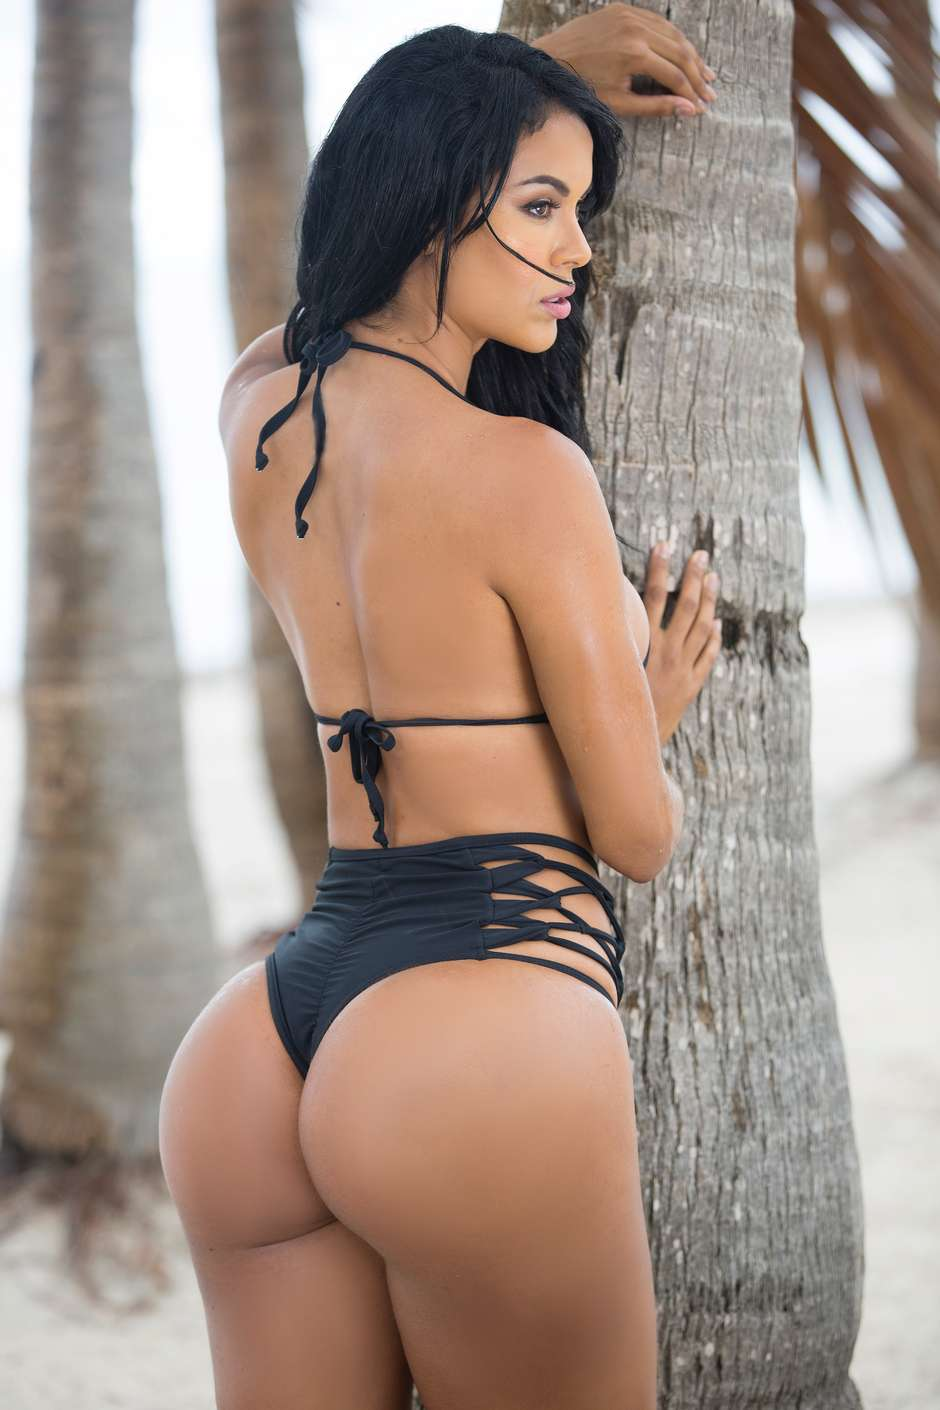 aline bernardes xxx webcam